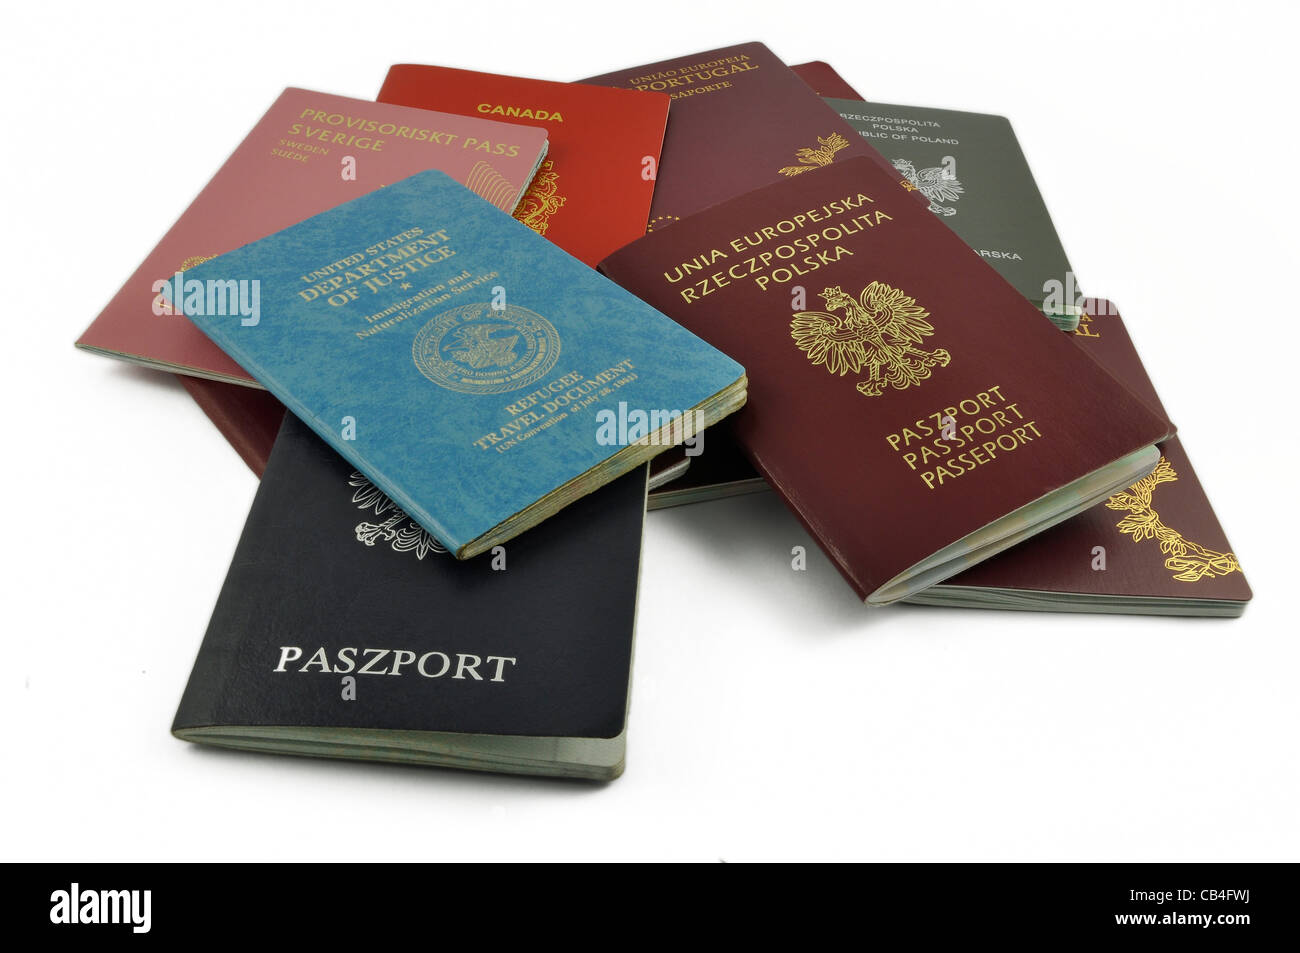 different, other travel documents isolated - Stock Image